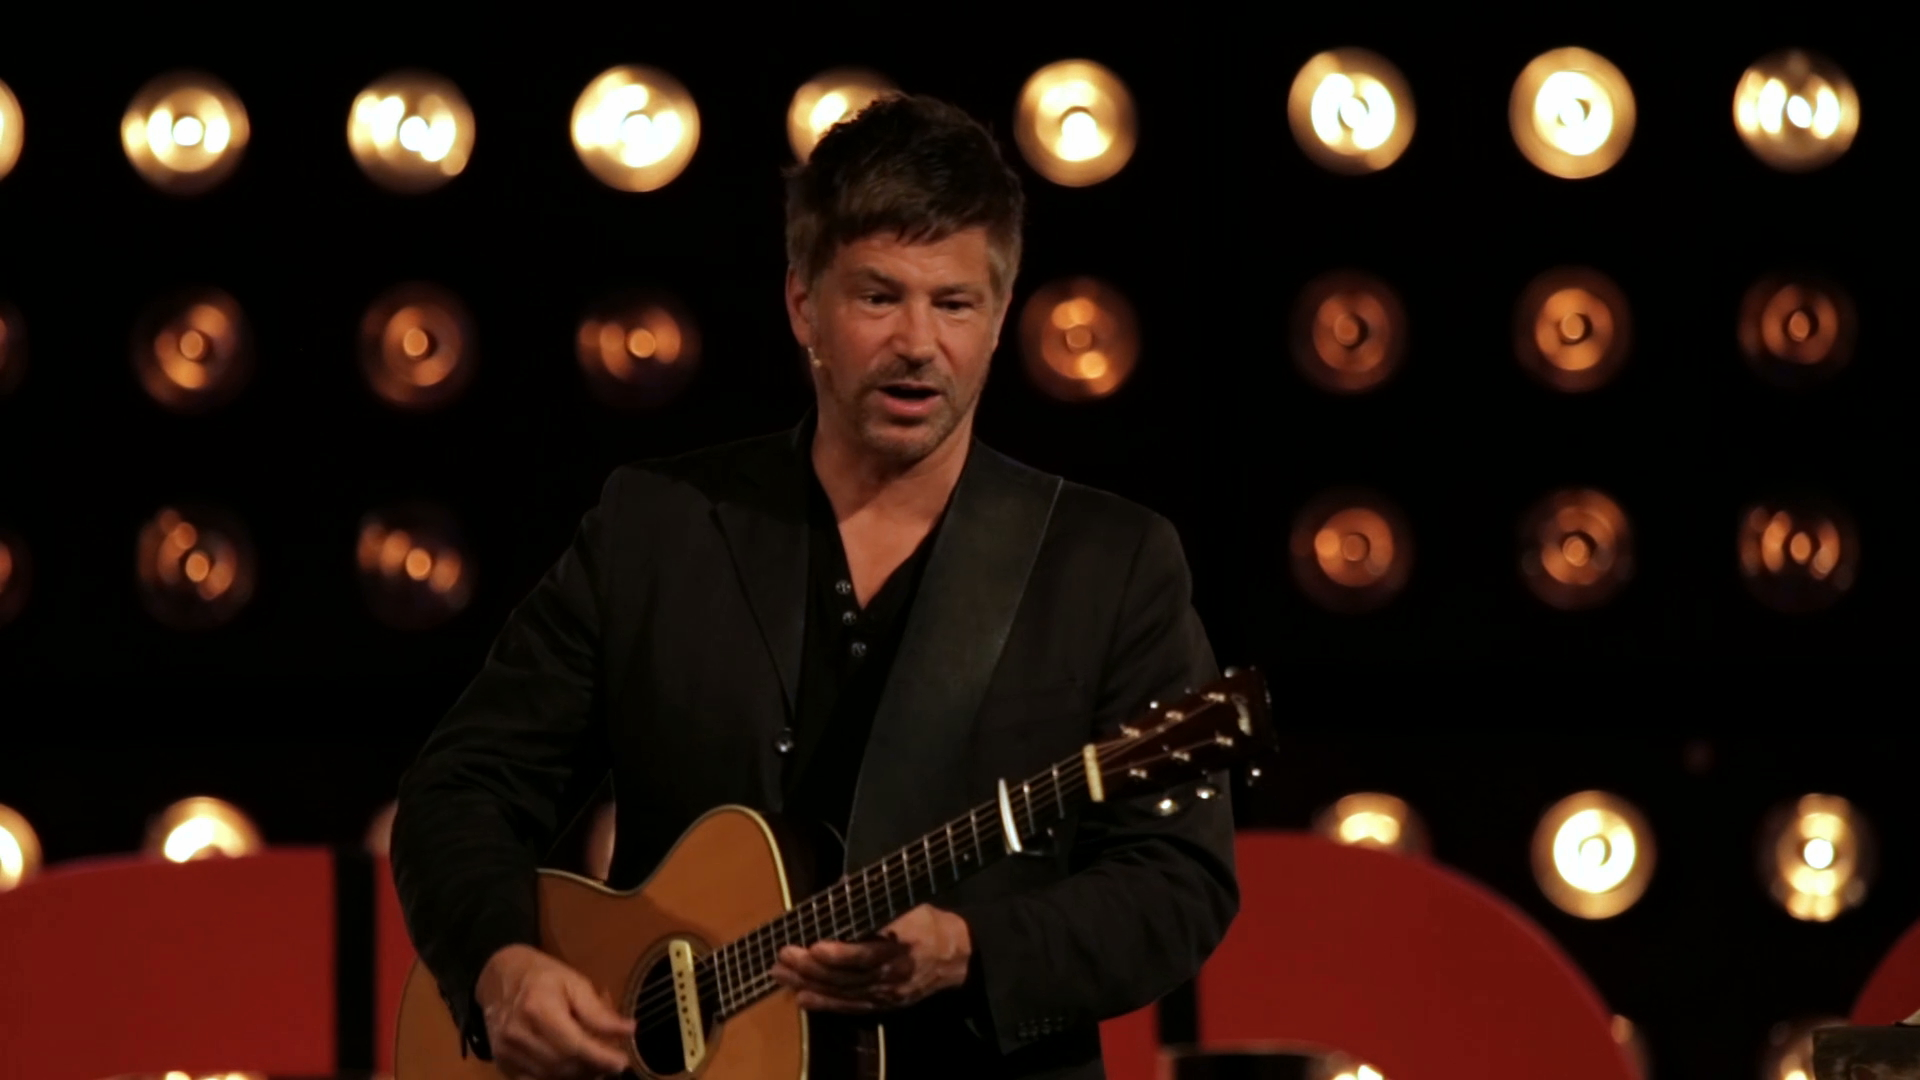 4.9 public and private worship paul baloche